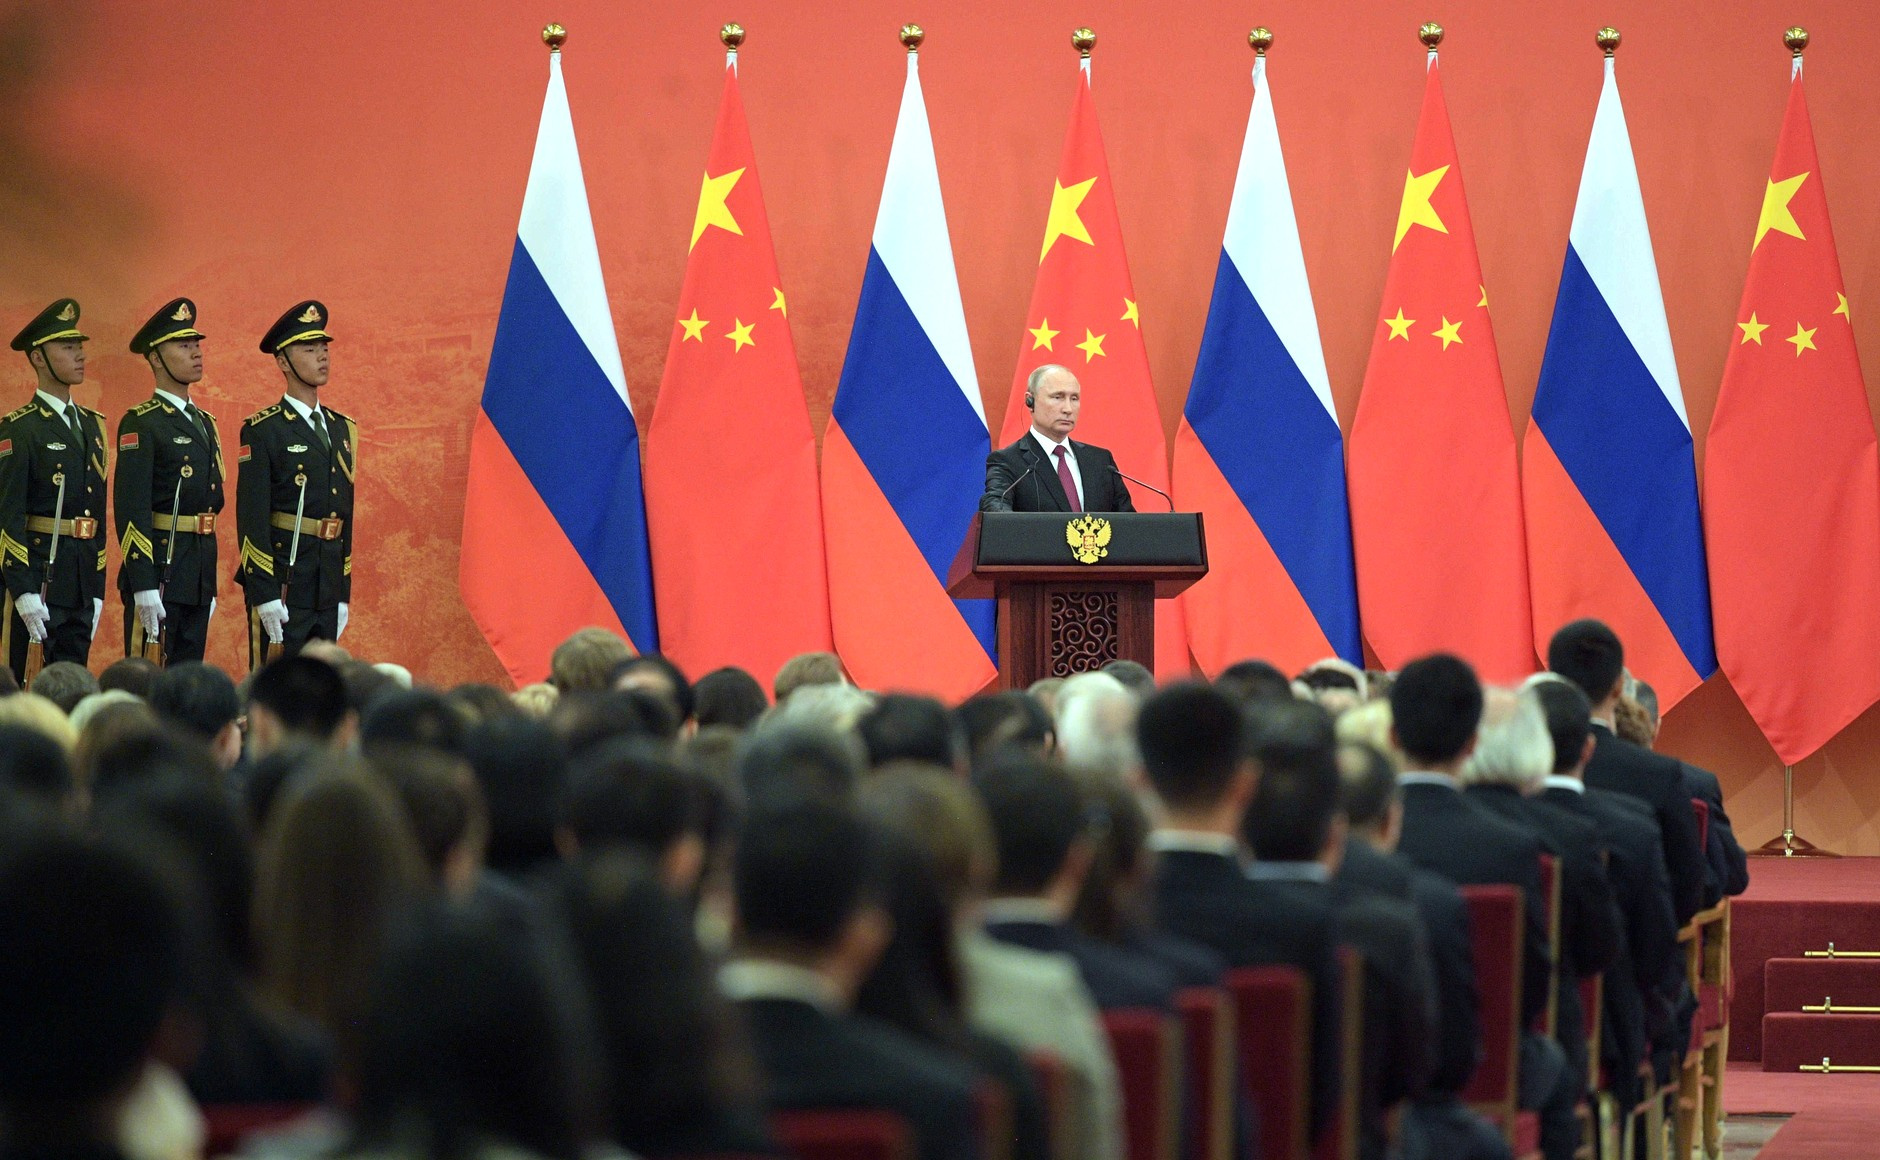 Vladimir_Putin_awarded_the_Chinese_Order